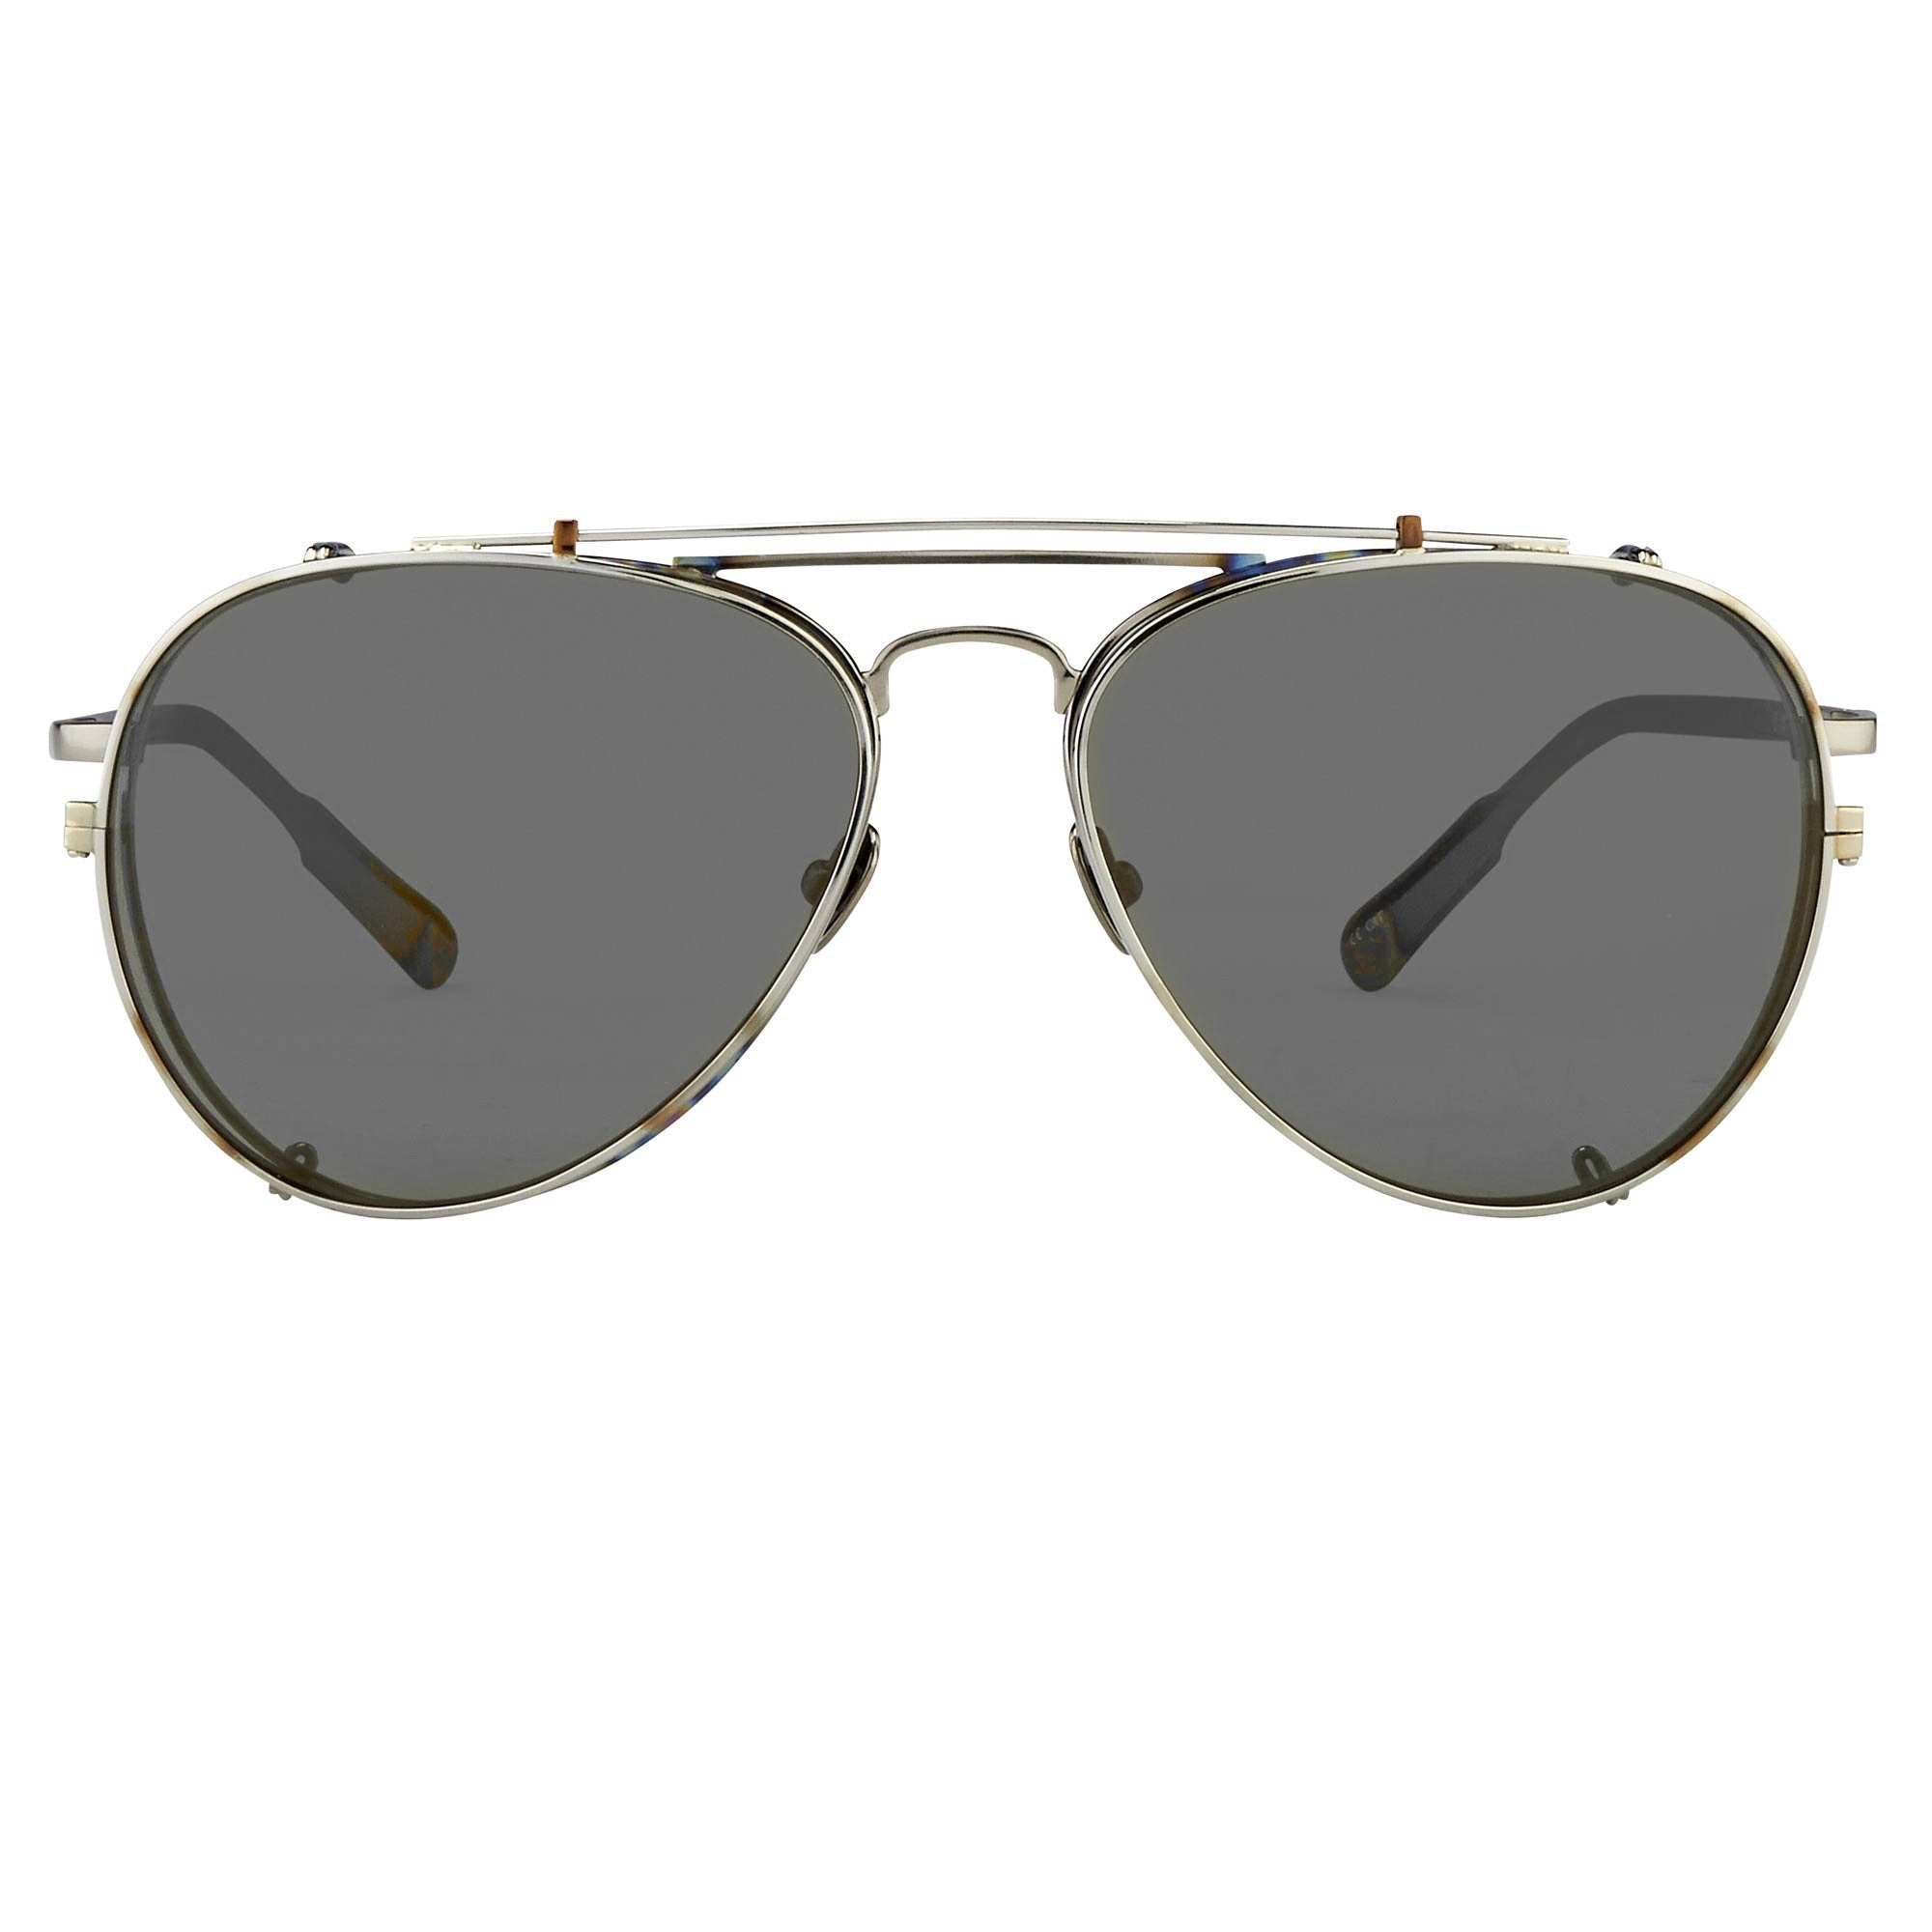 Kris Van Assche Sunglasses Titanium Unisex Burnt Silver Gold Clip-On with Silver Mirror Lenses Category 3 - KVA89C1SUN - Watches & Crystals